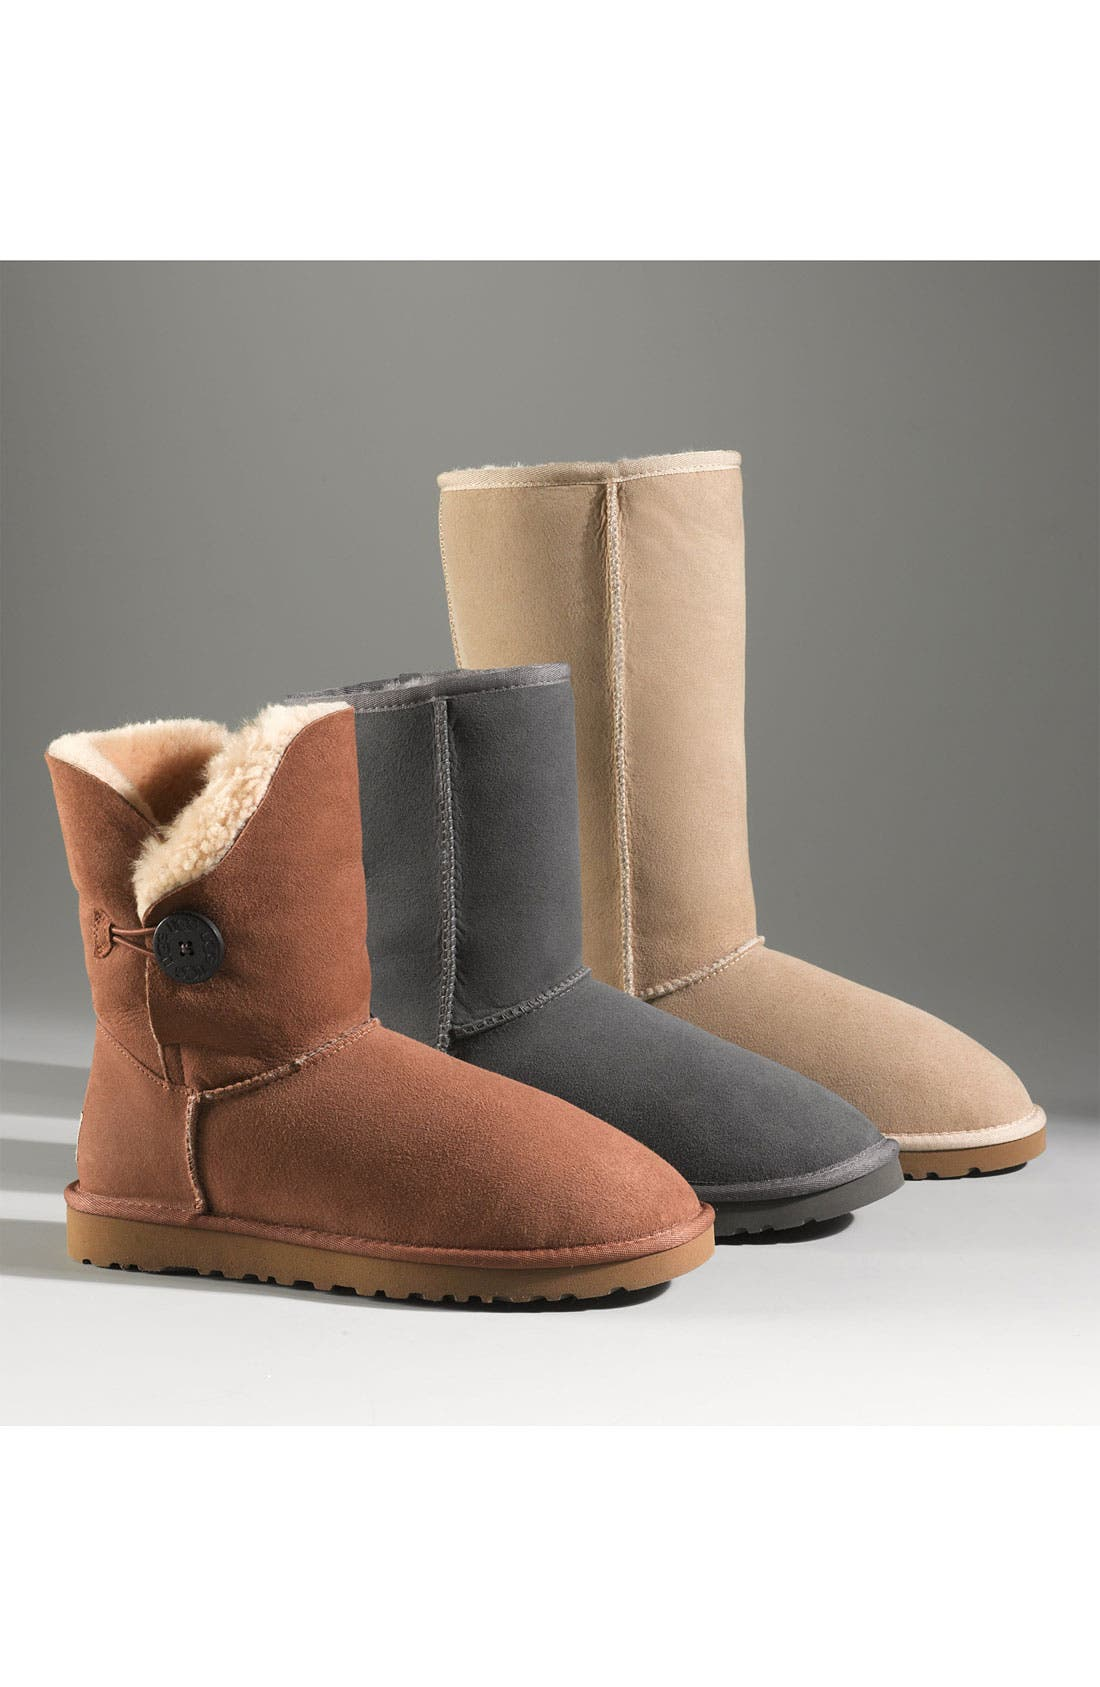 'Classic Tall' Boot,                             Main thumbnail 1, color,                             505